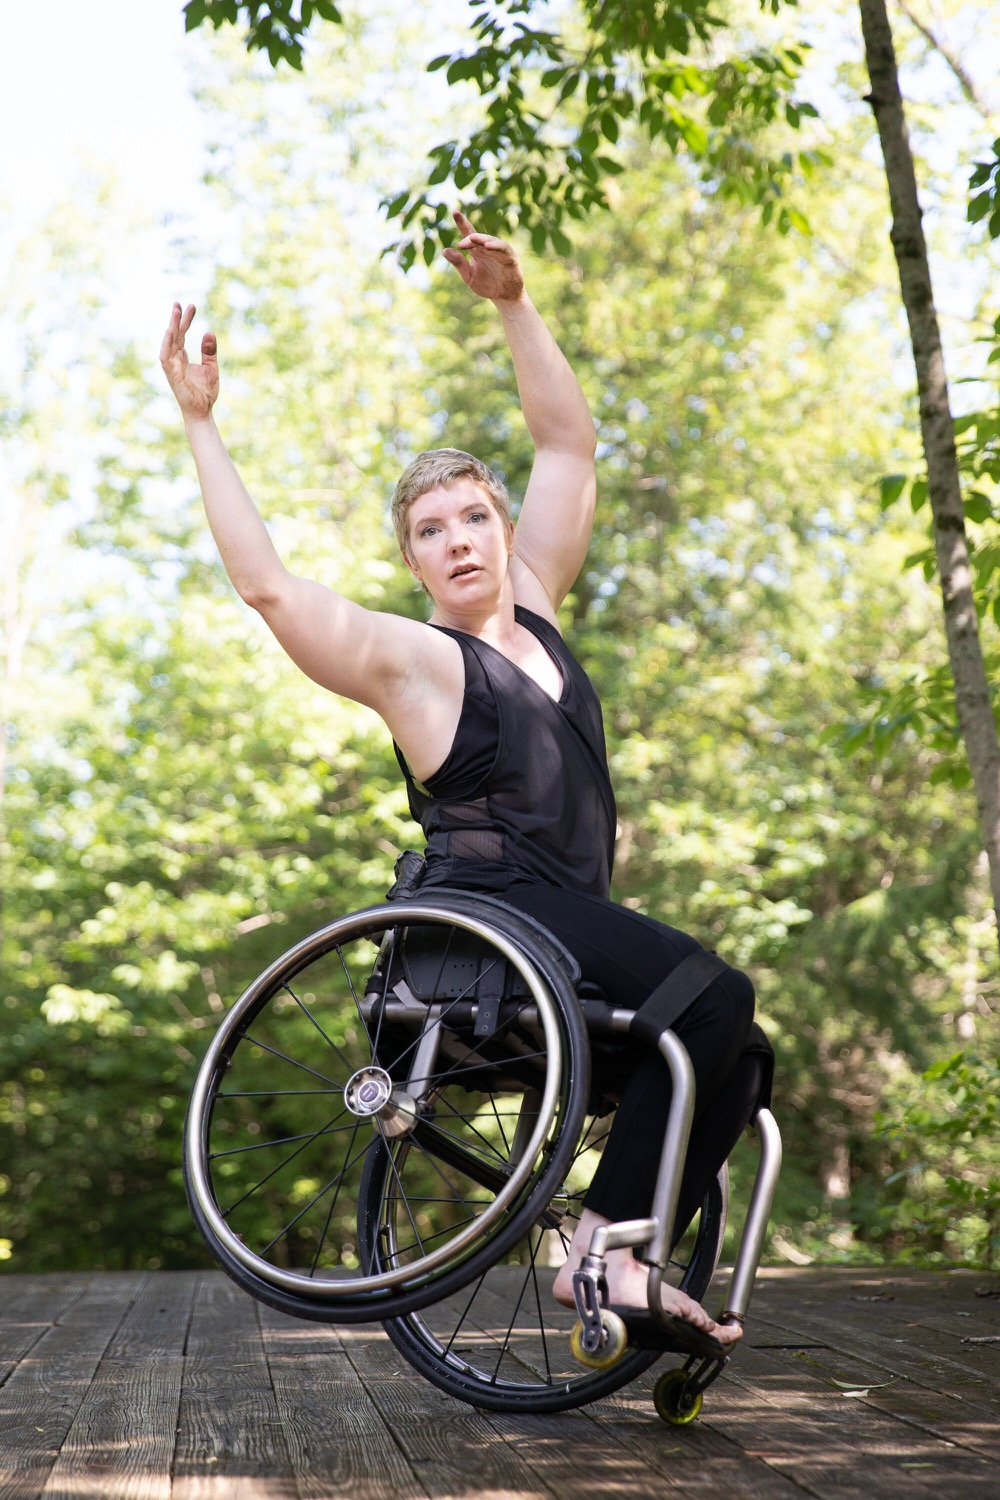 Disability Arts Leader Laurel Lawson Shares Her Response To